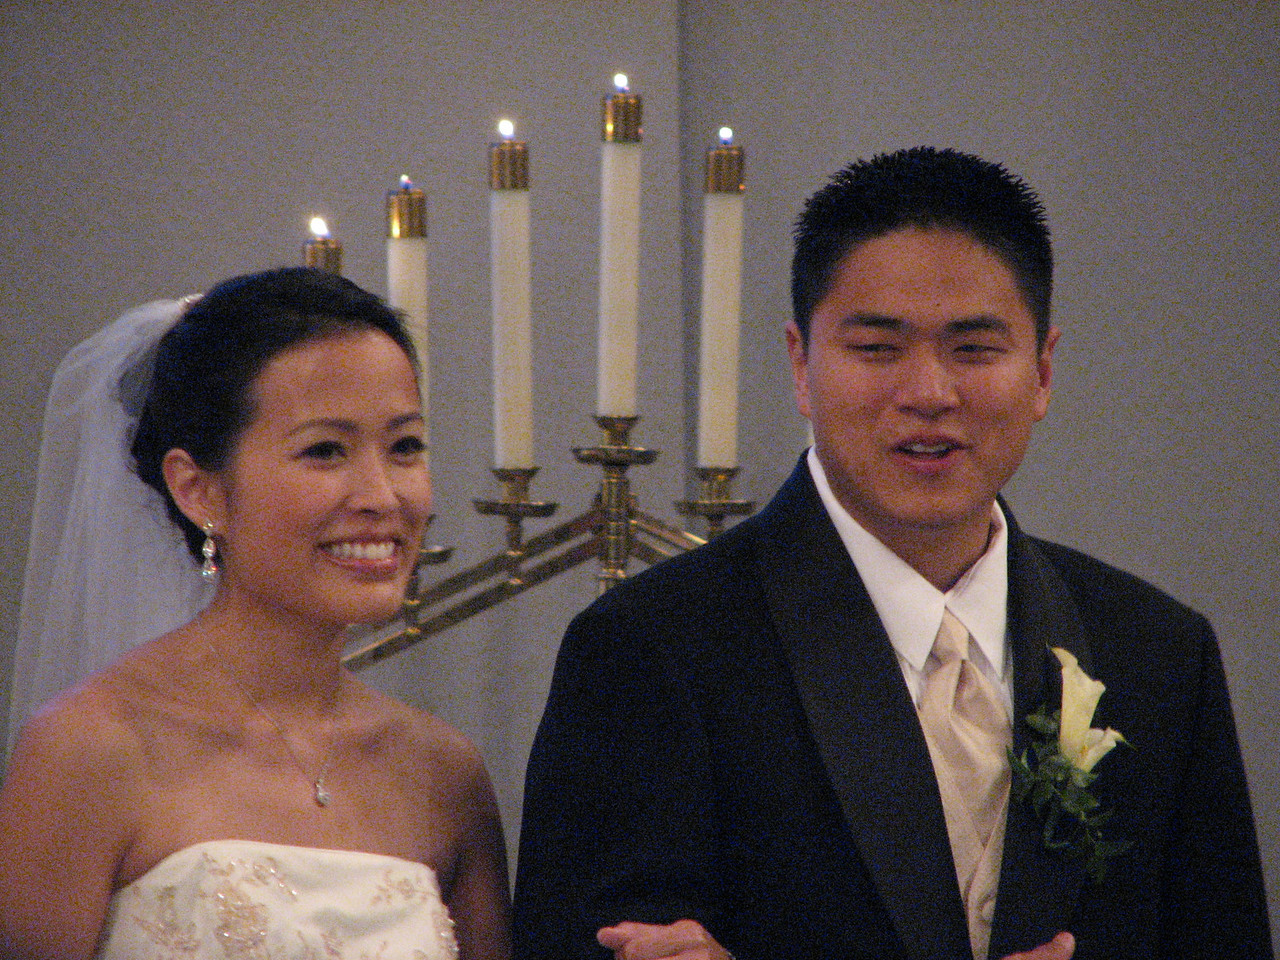 2007 06 09 Sat - The couple